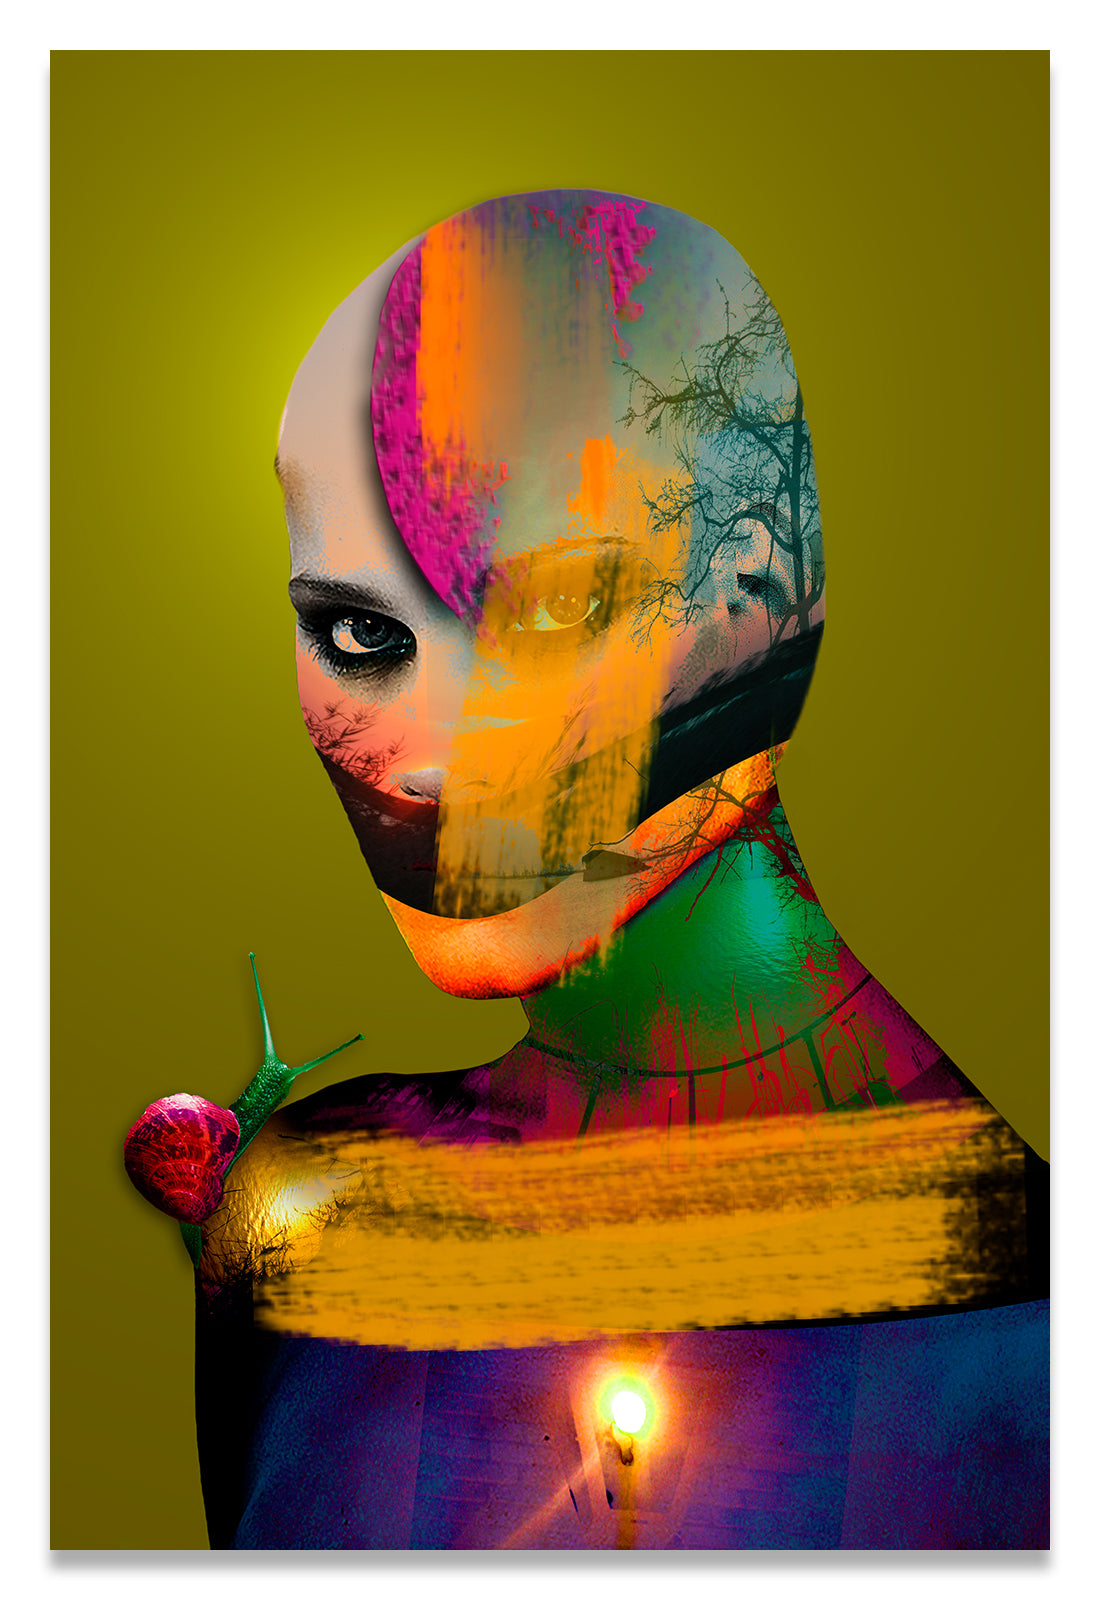 Bold Color Portrait of a Bald Woman Covered in Paint with a Snail on her Shoulder.